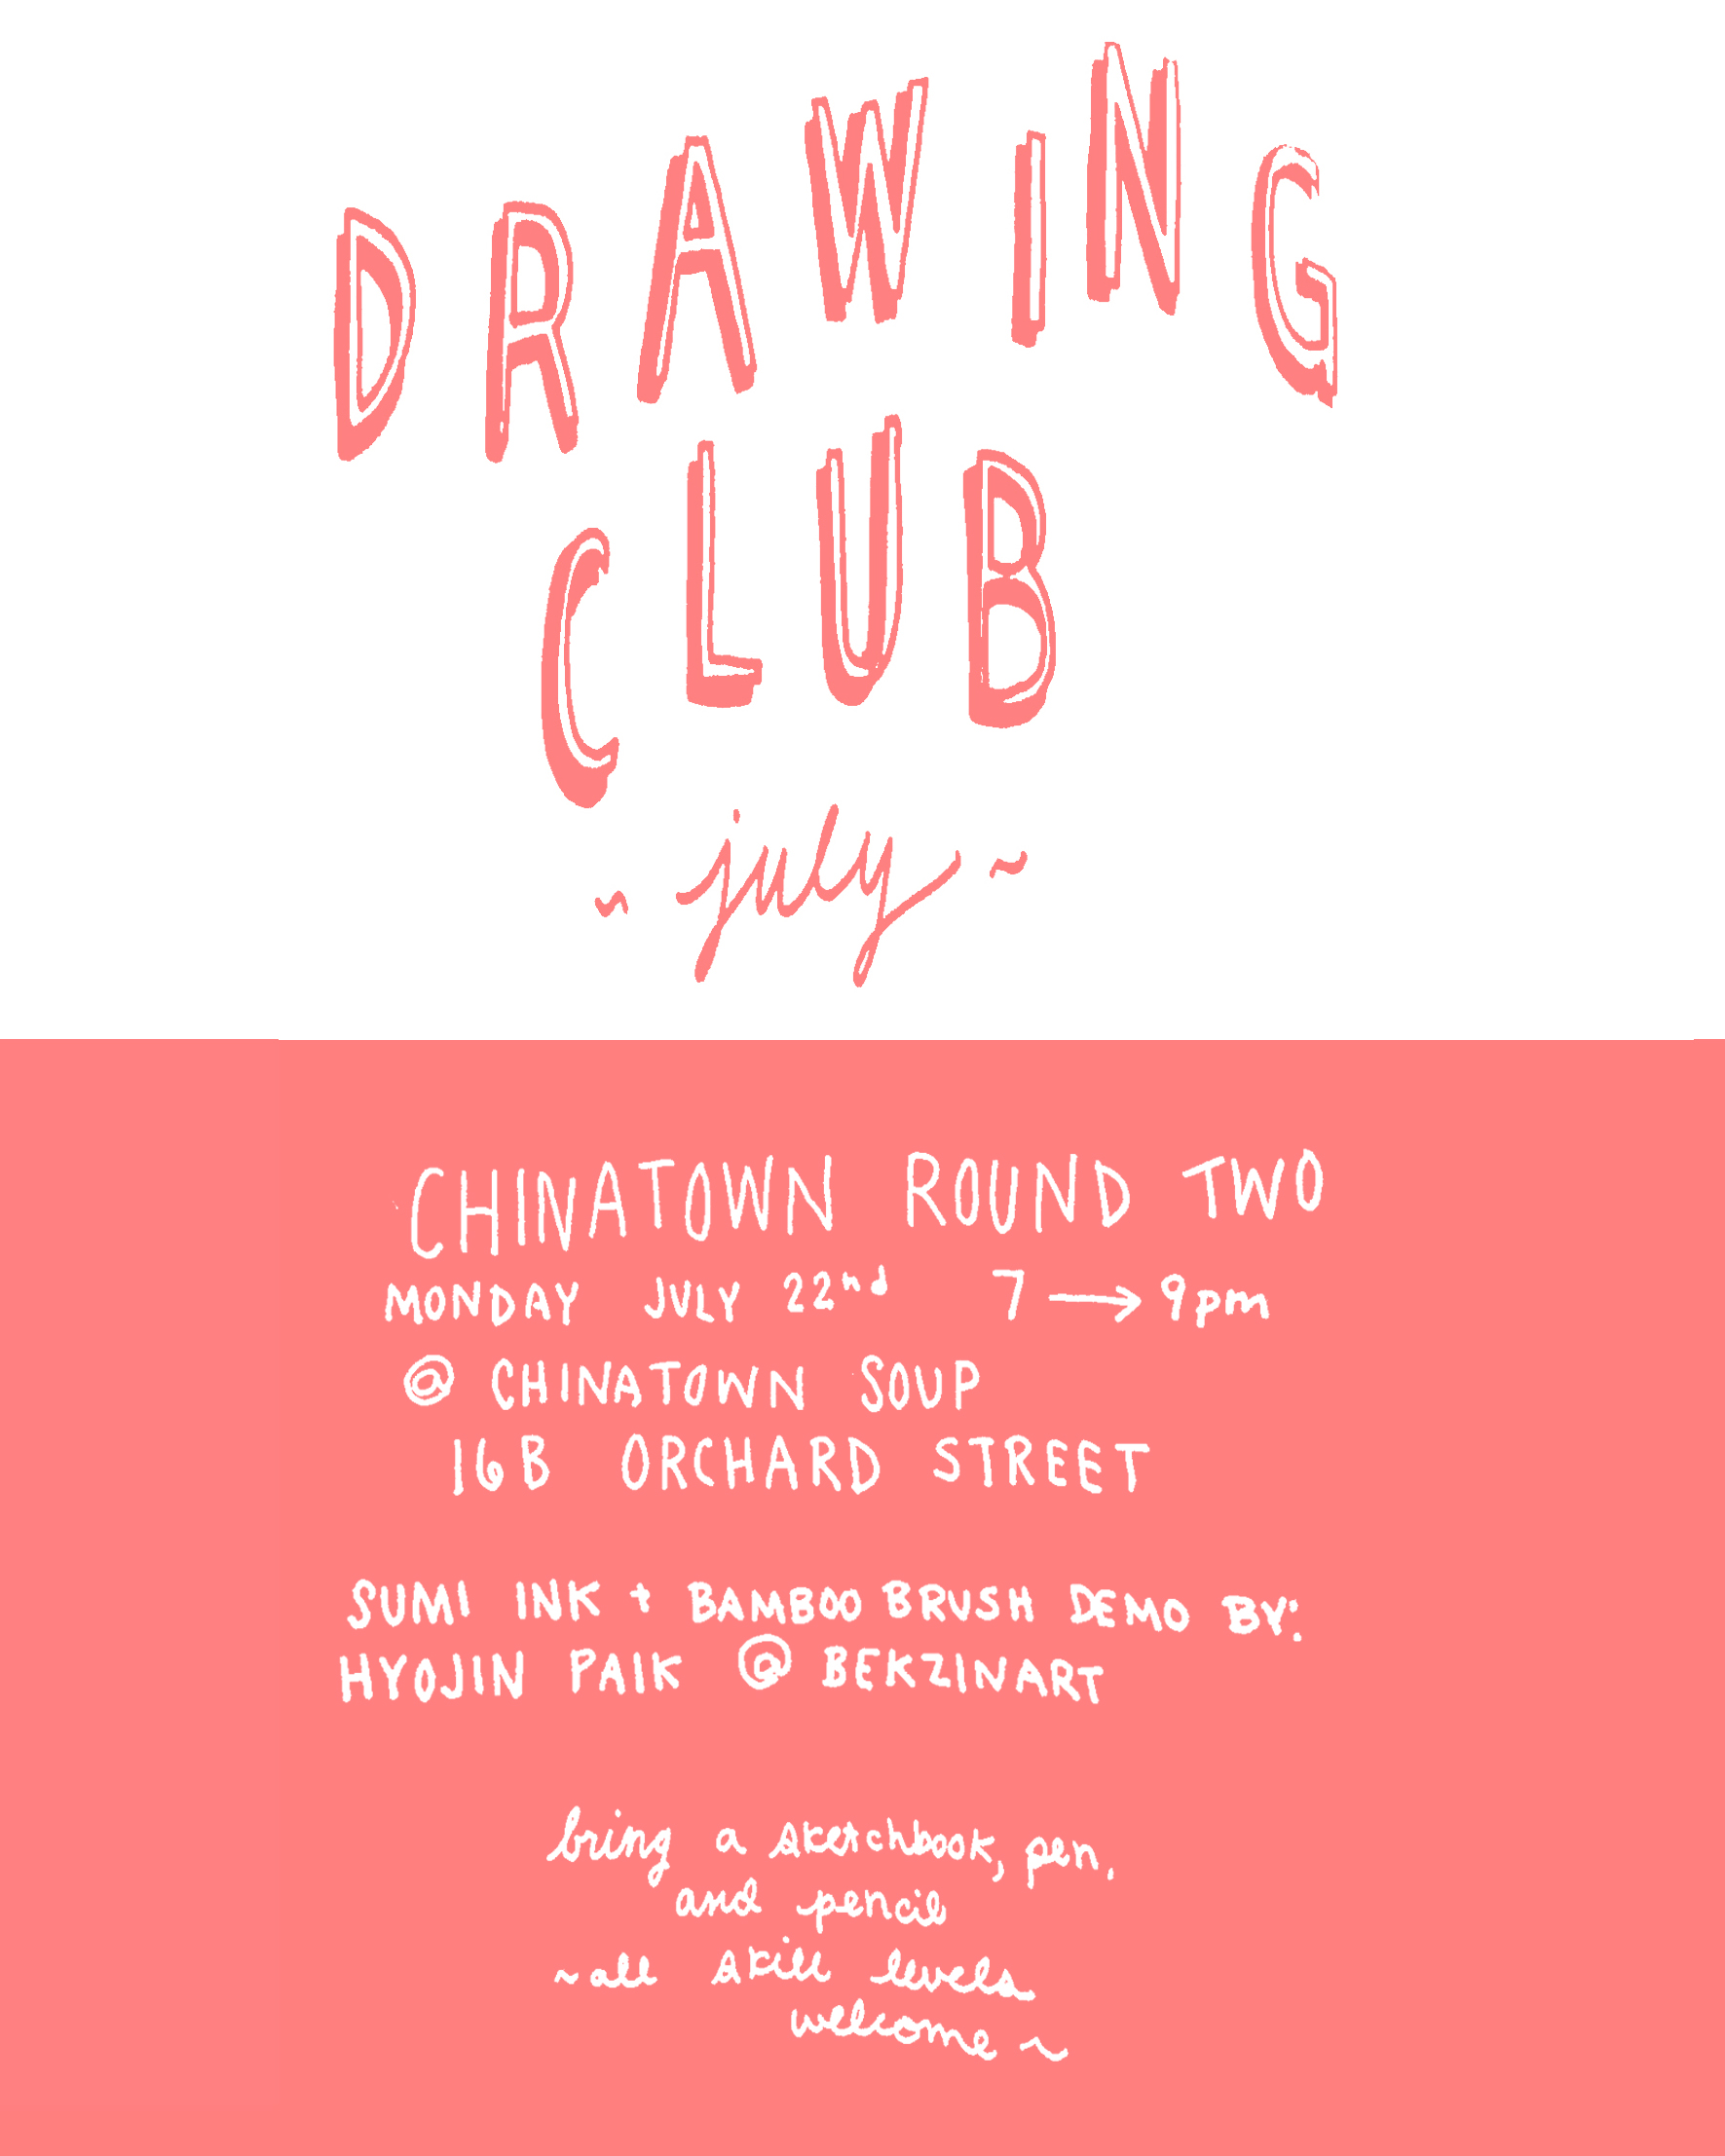 July Drawing Club Chinatown Instagram Flyer.jpg